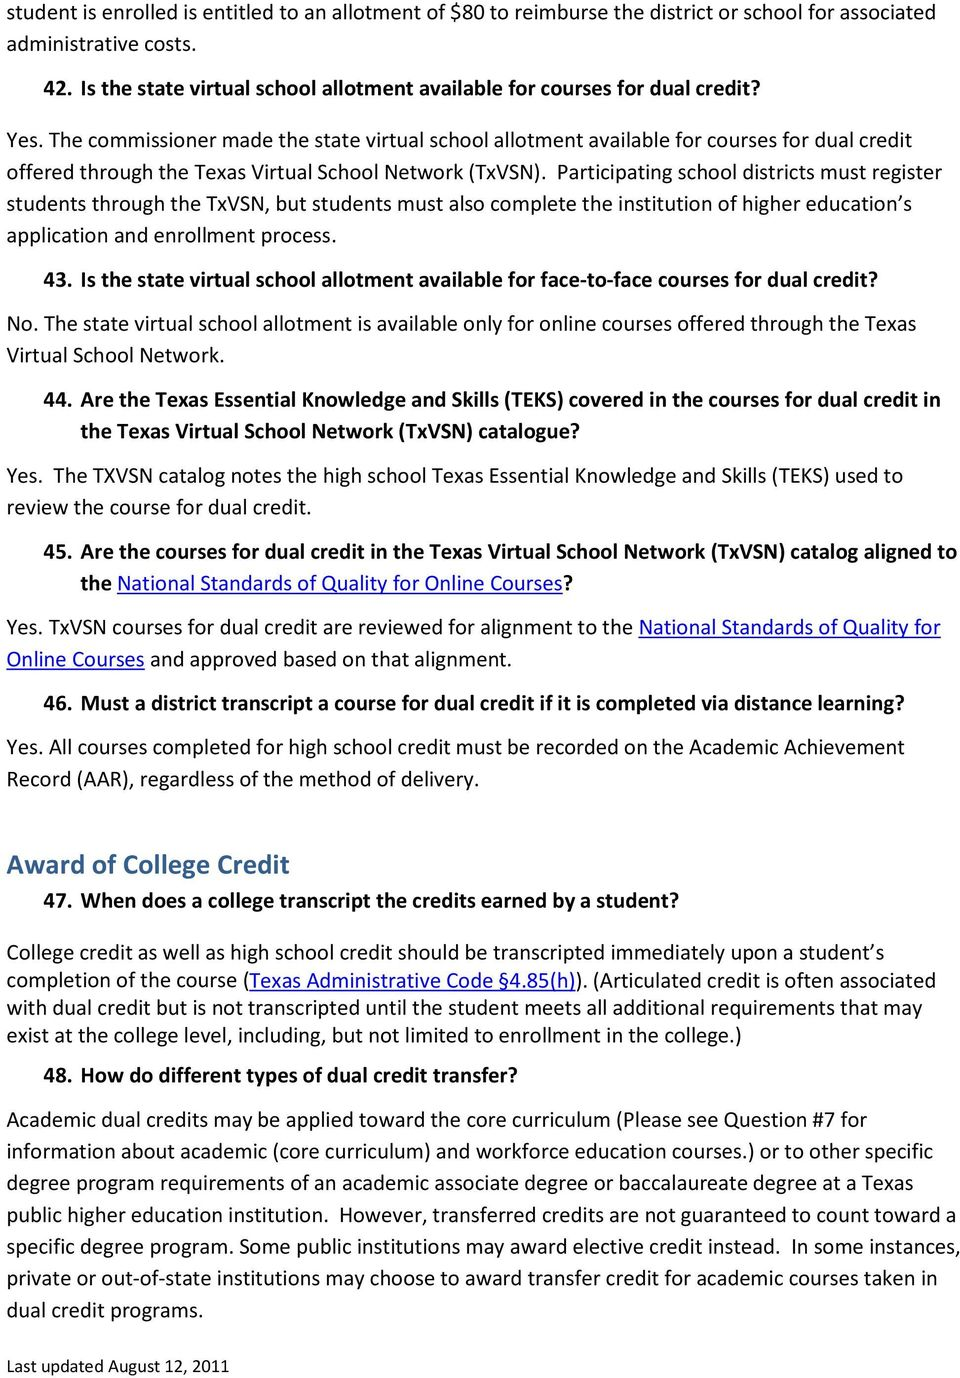 The commissioner made the state virtual school allotment available for courses for dual credit offered through the Texas Virtual School Network (TxVSN).